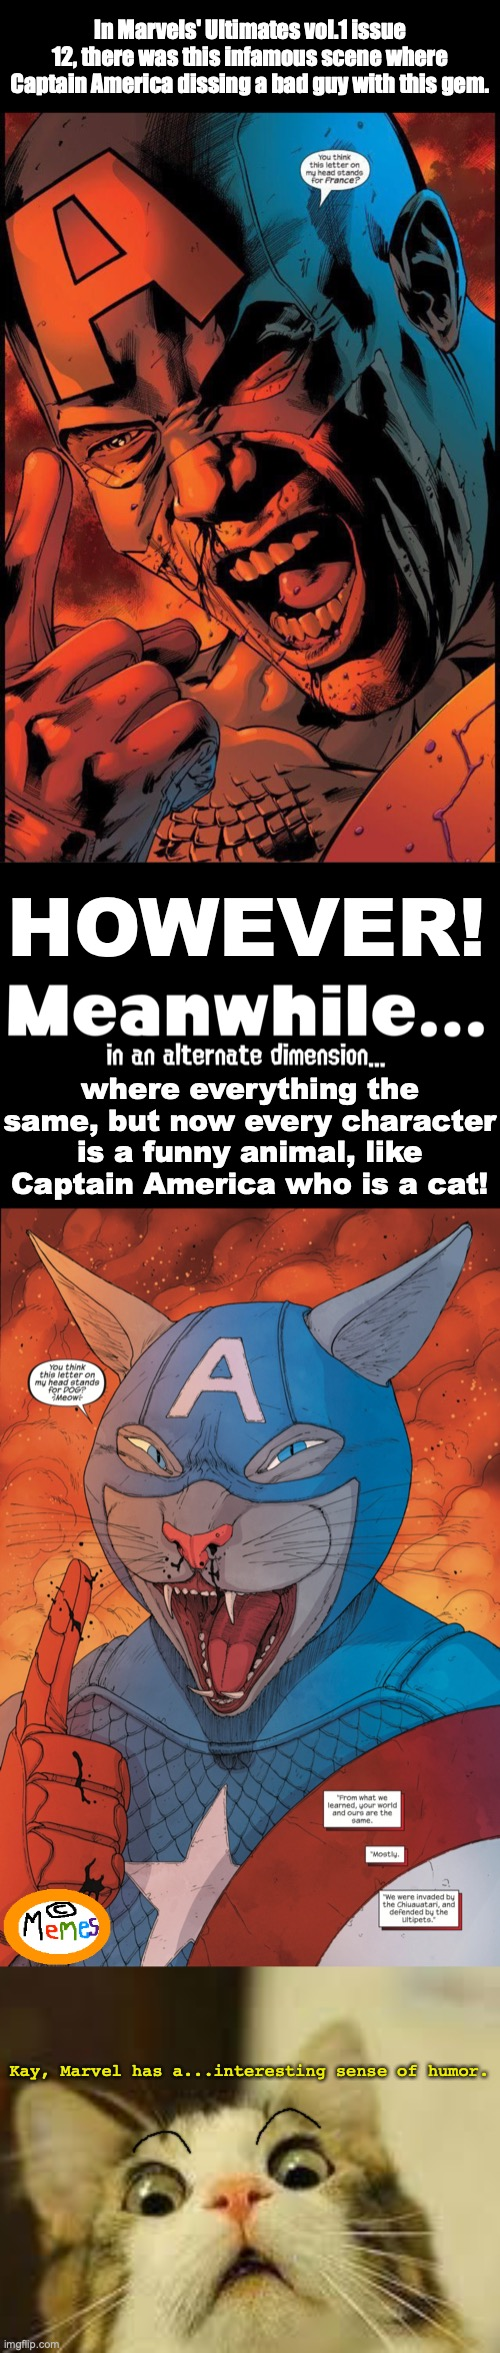 Same scene but different dimensions (Marvel Comics). |  In Marvels' Ultimates vol.1 issue 12, there was this infamous scene where Captain America dissing a bad guy with this gem. HOWEVER! where everything the same, but now every character is a funny animal, like Captain America who is a cat! Kay, Marvel has a...interesting sense of humor. | image tagged in shocked cat,marvel,captain america,cats,comics,wtf | made w/ Imgflip meme maker